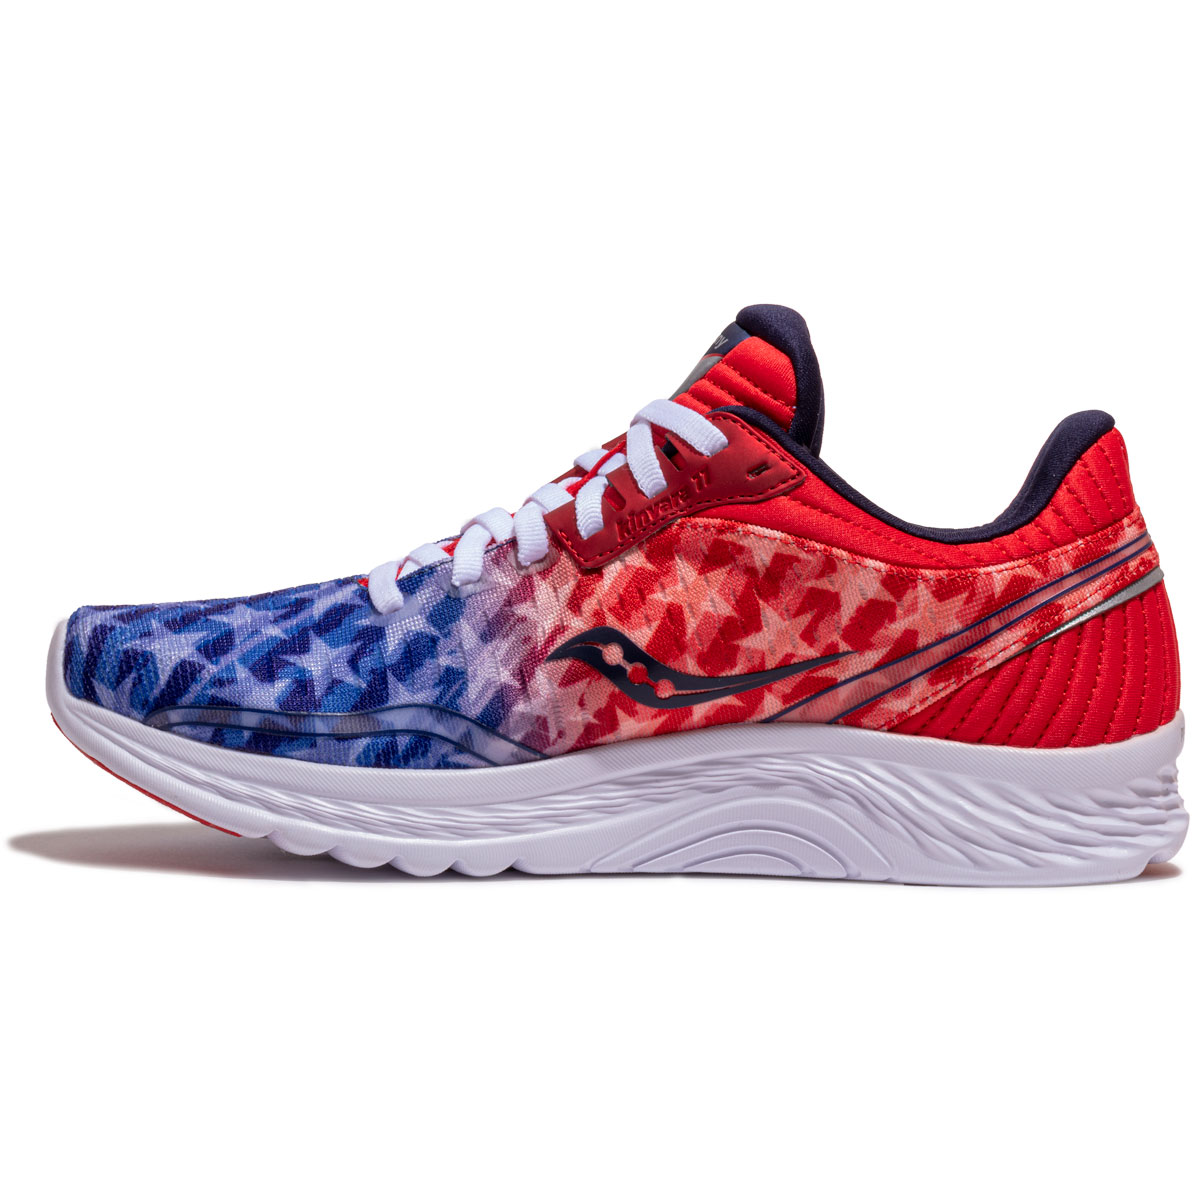 Women's Saucony Kinvara 11 Running Shoe - Color: Red/White/Blue - Size: 5 - Width: Regular, Red/White/Blue, large, image 4